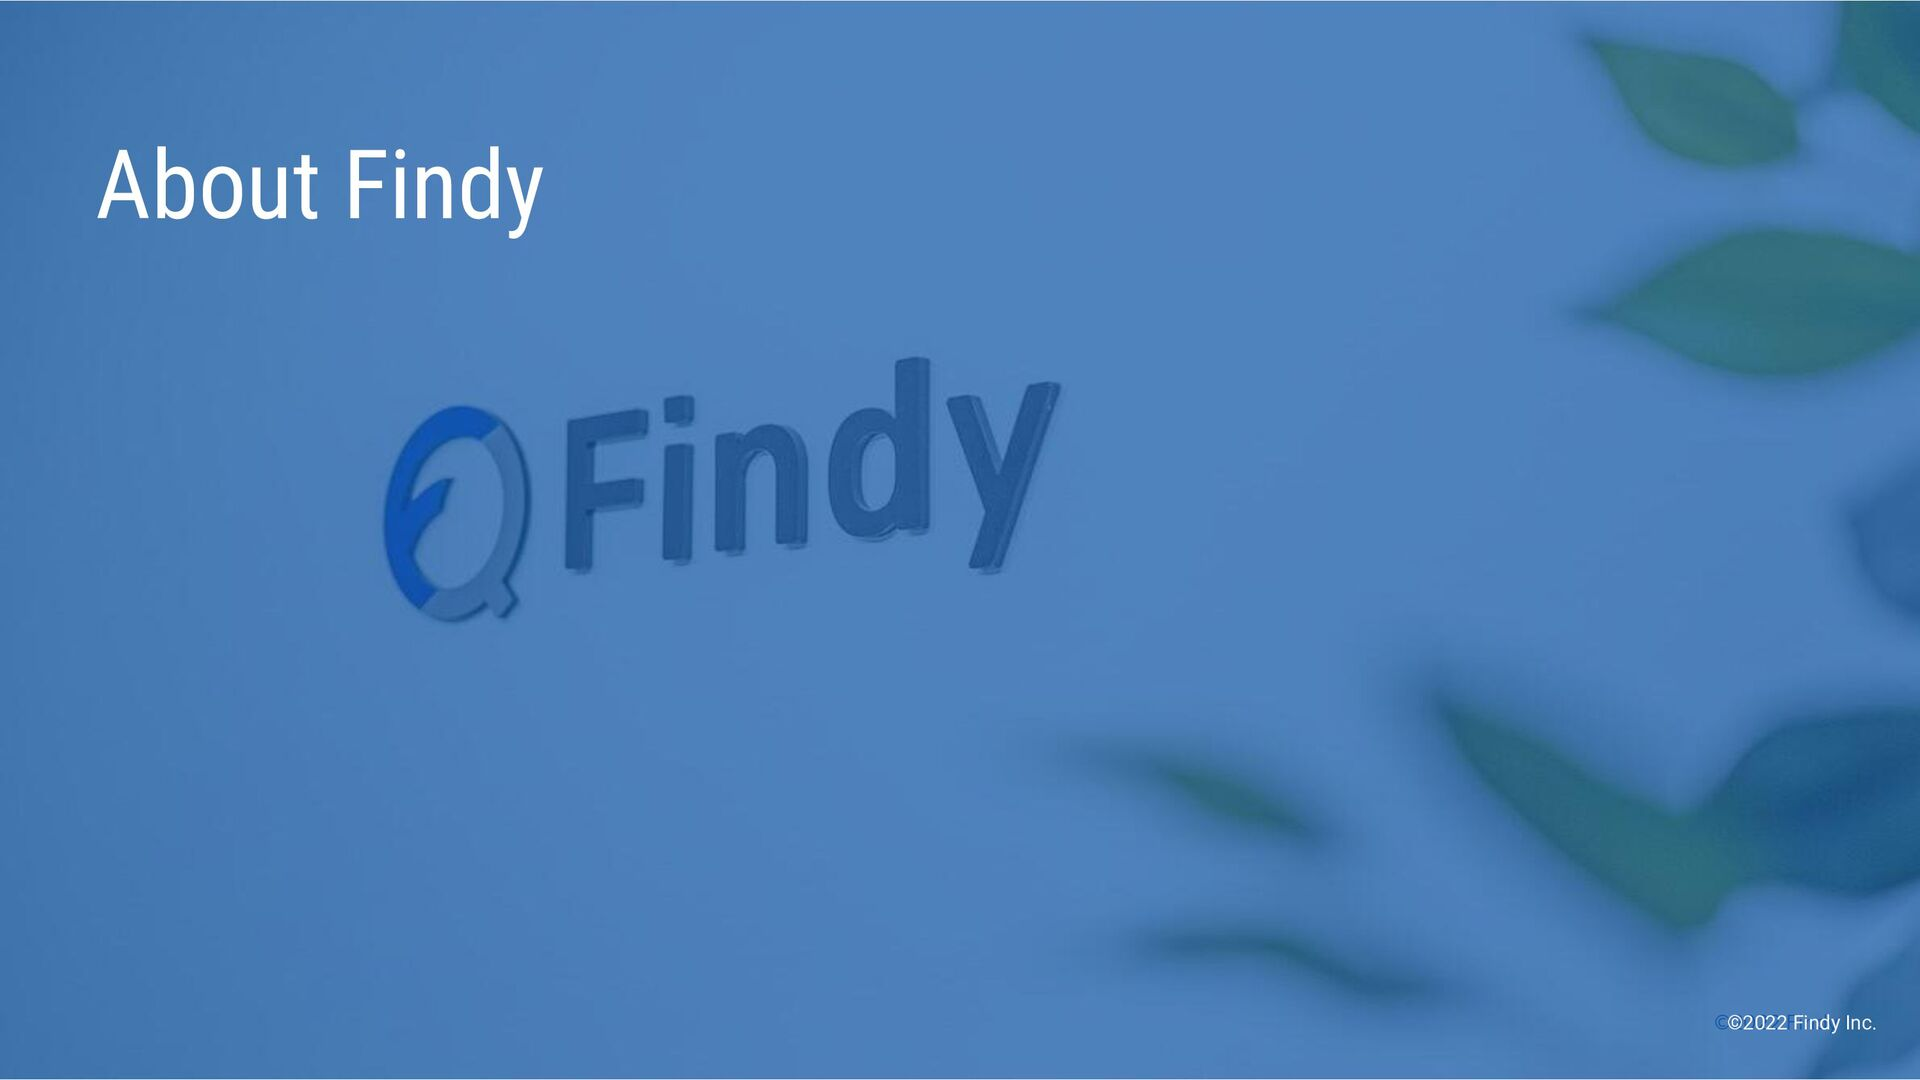 ©2021 Findy Inc. ©2021 Findy Inc. About Findy